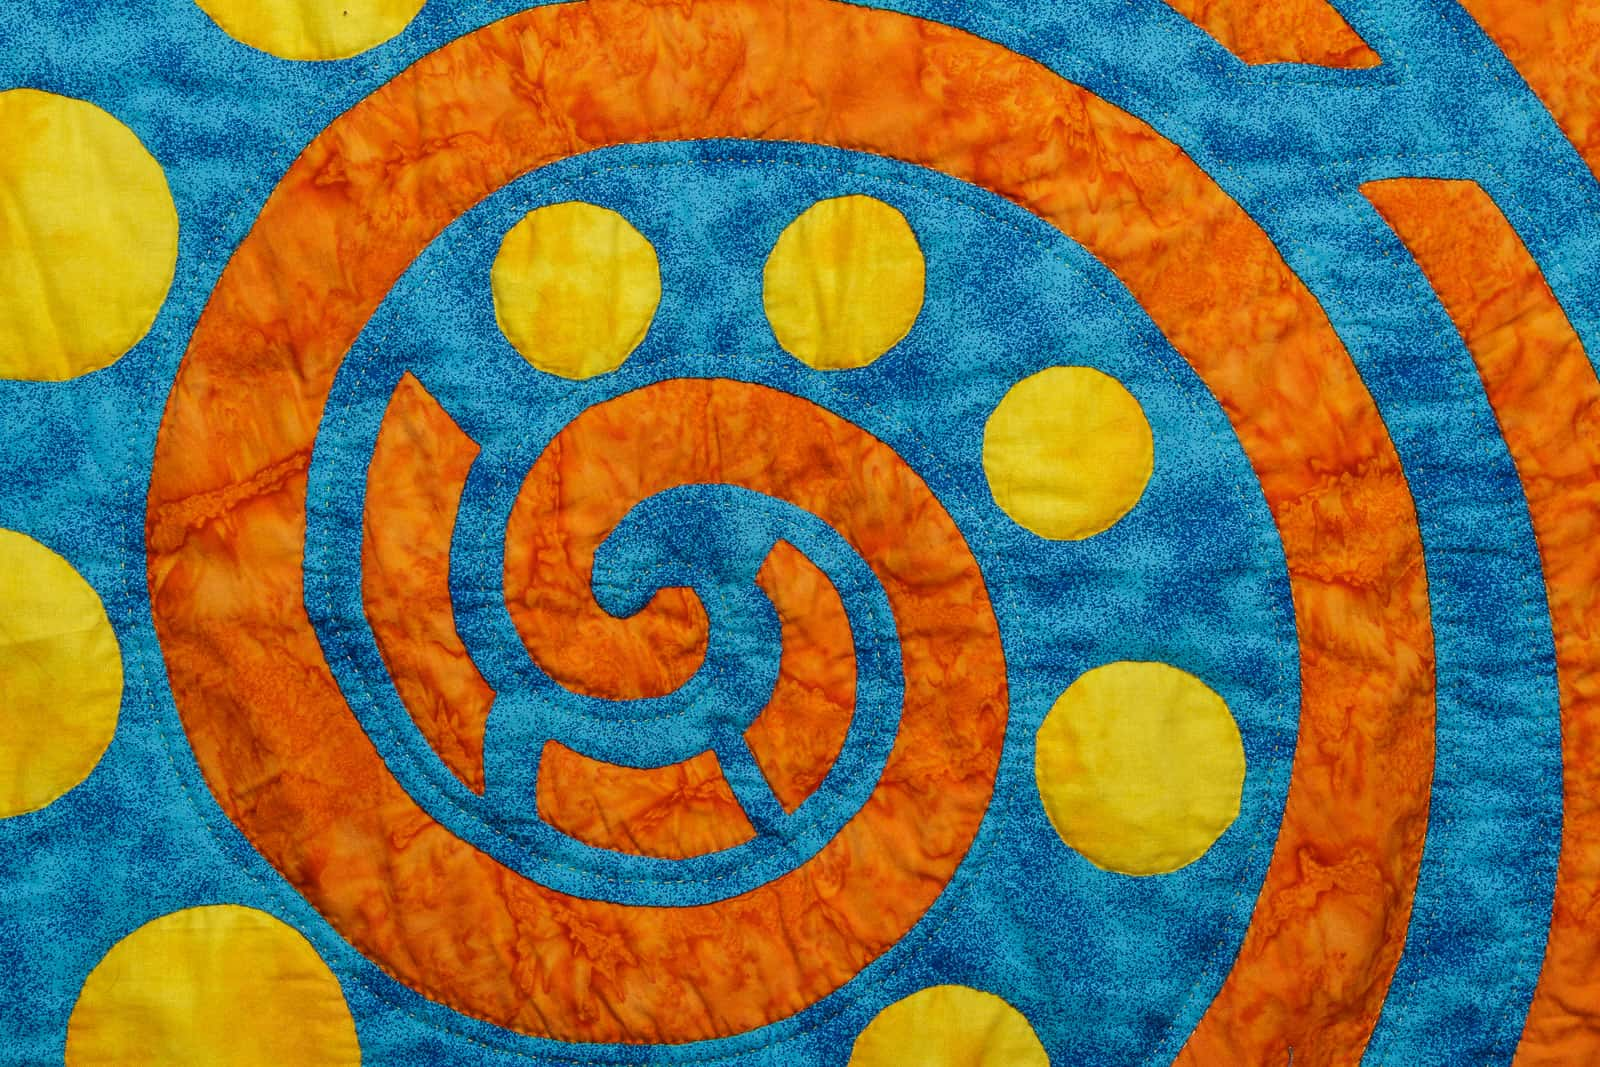 quilt design product close-up